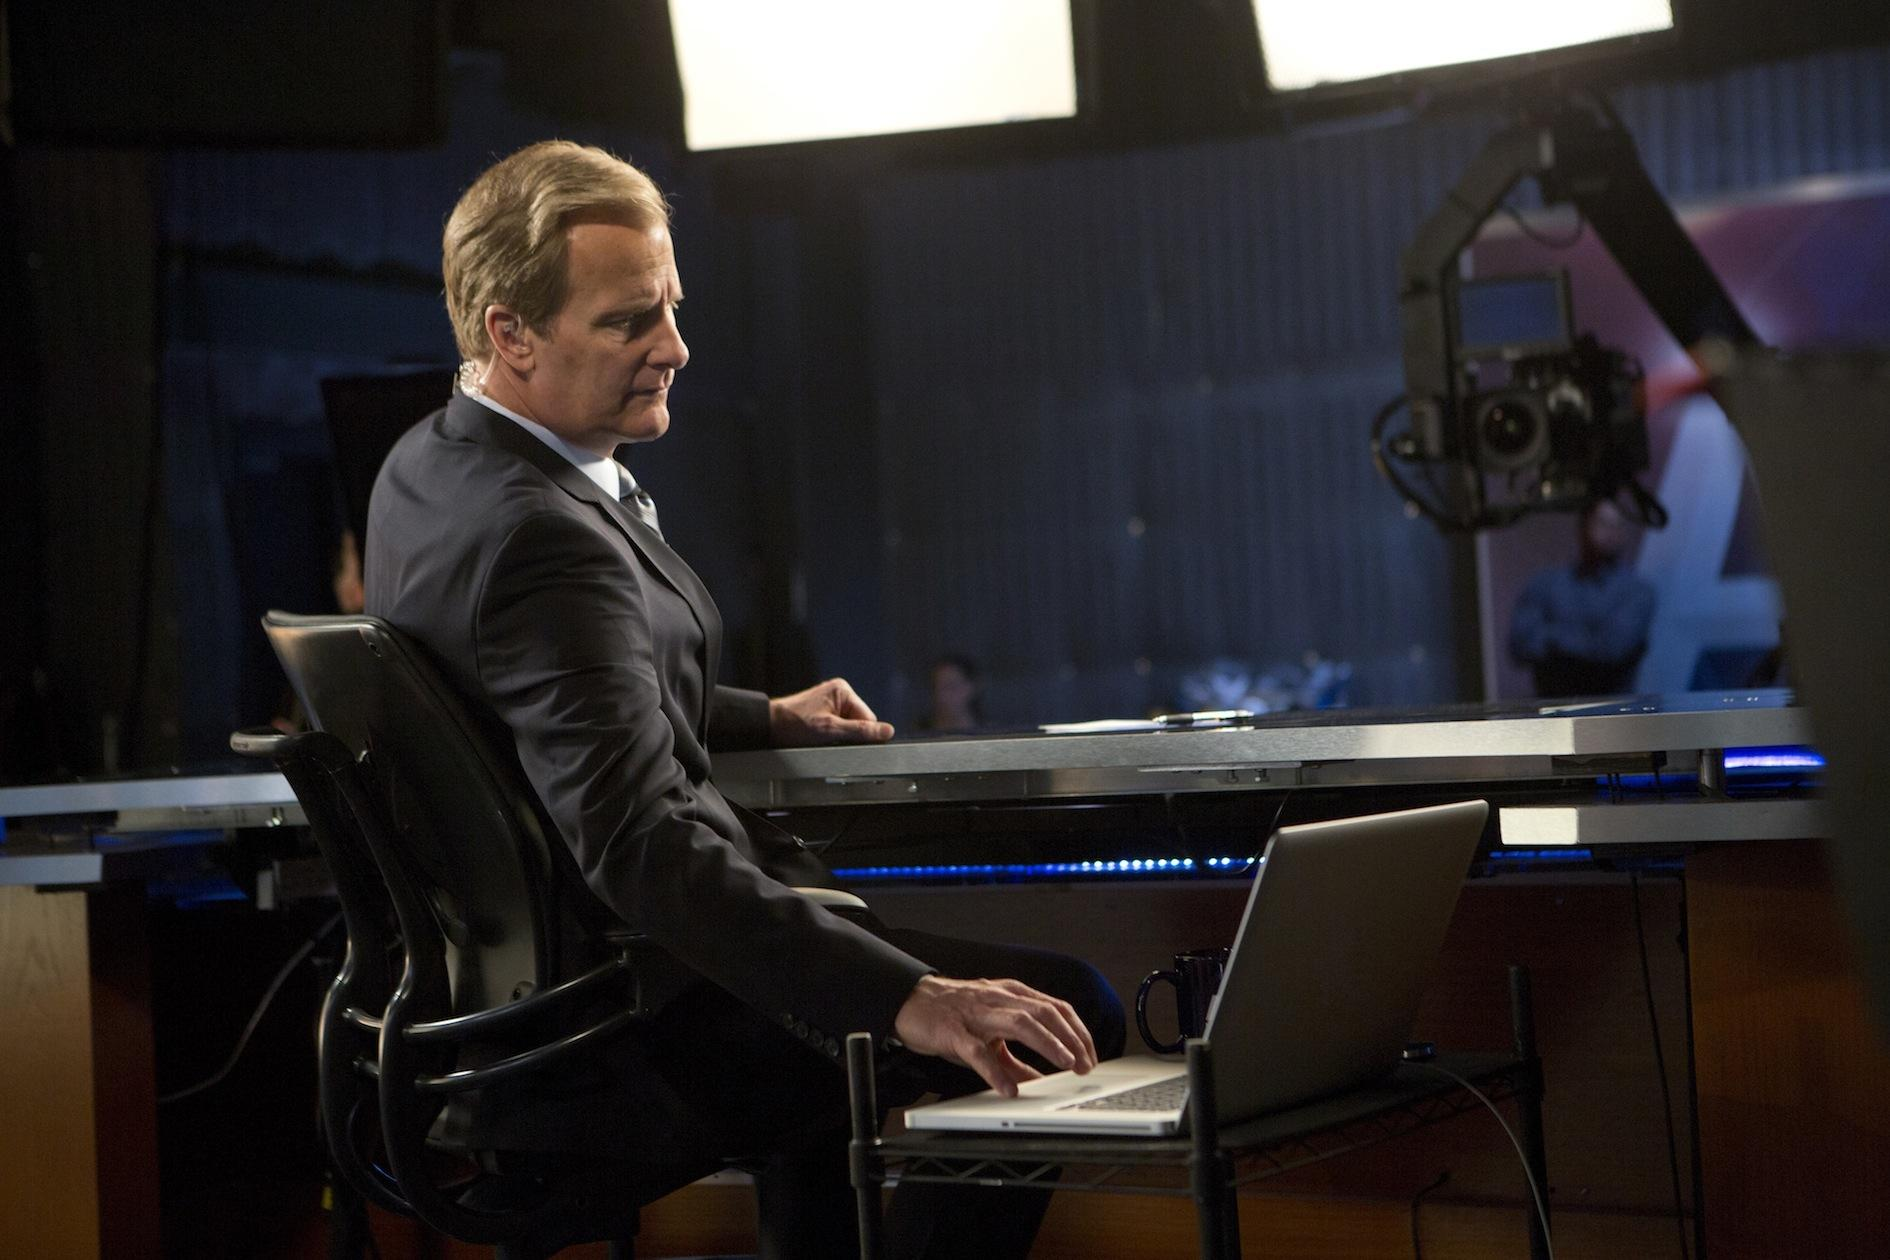 The Newsroom (2012) wallpapers HD quality